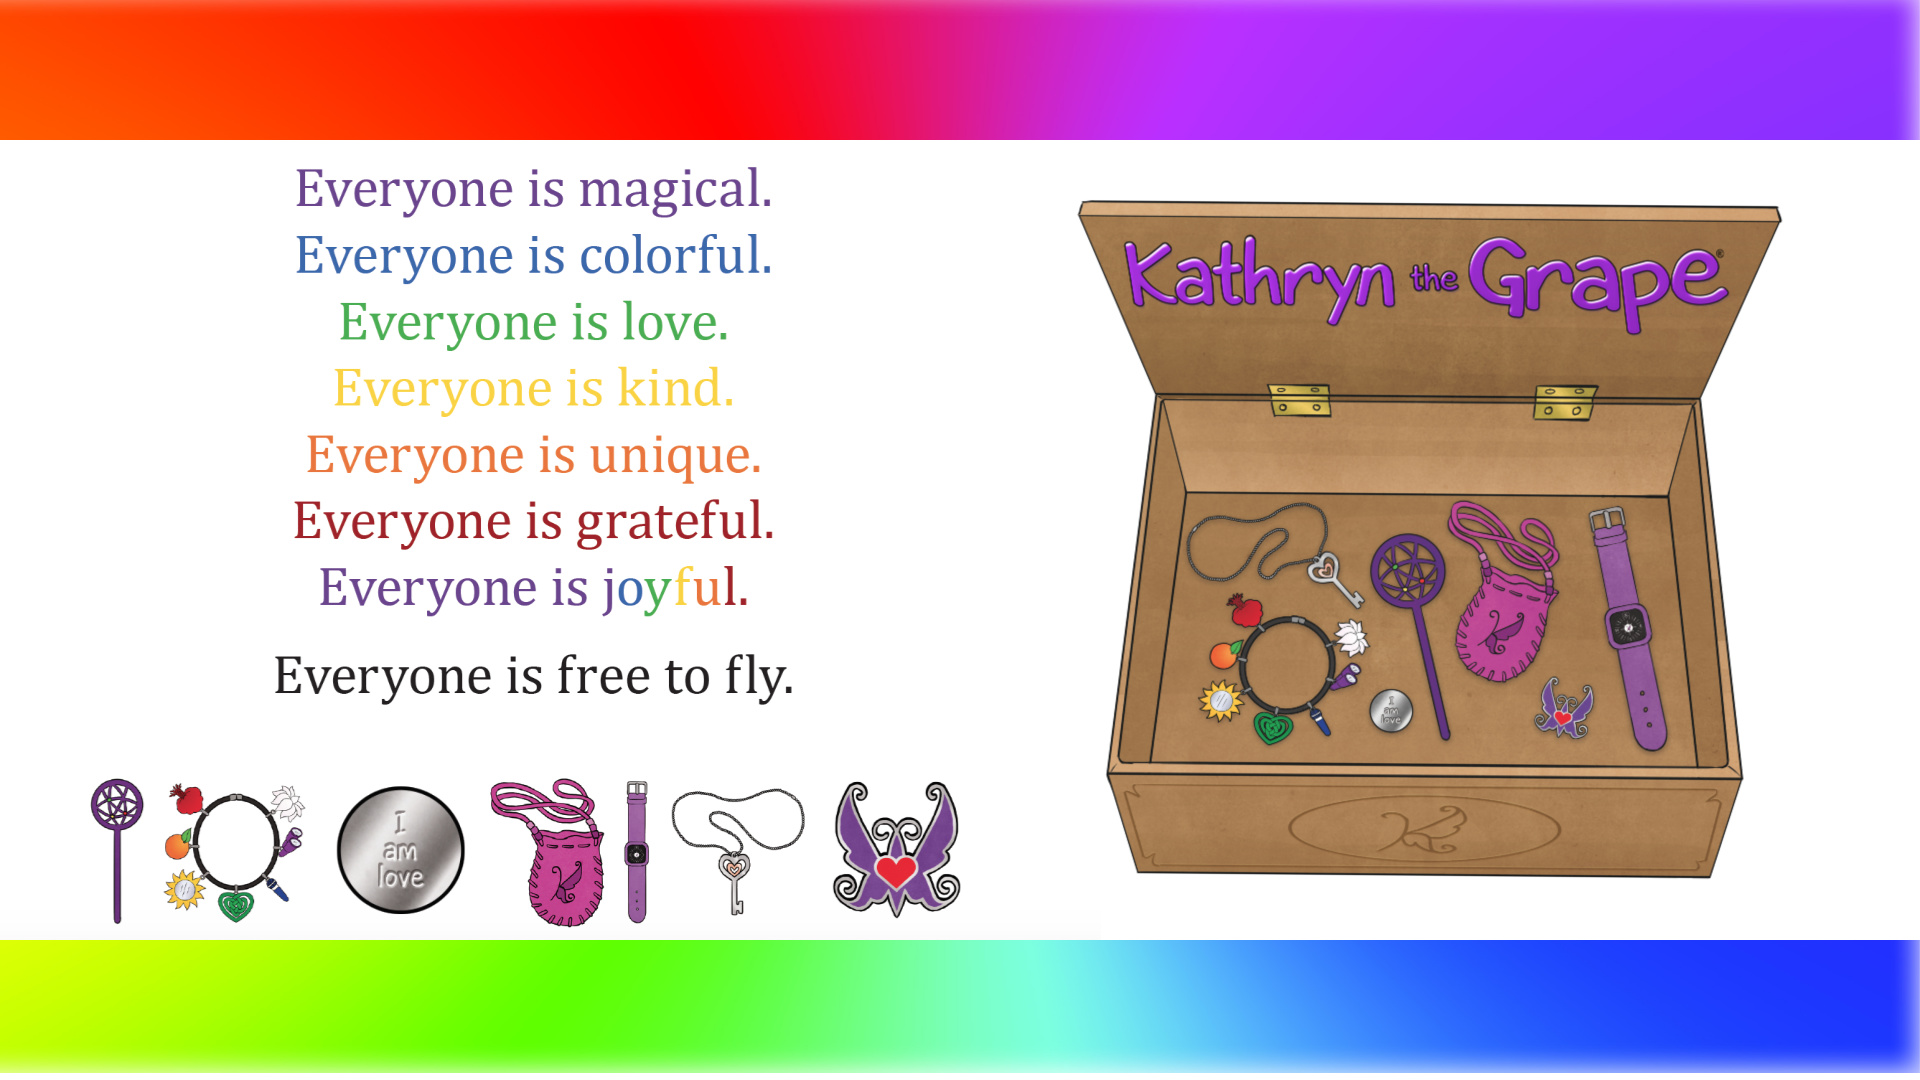 Kathryn the Grape Treasure Box with Tools of Love (created by Kathryn Cloward) 1920 x 1080